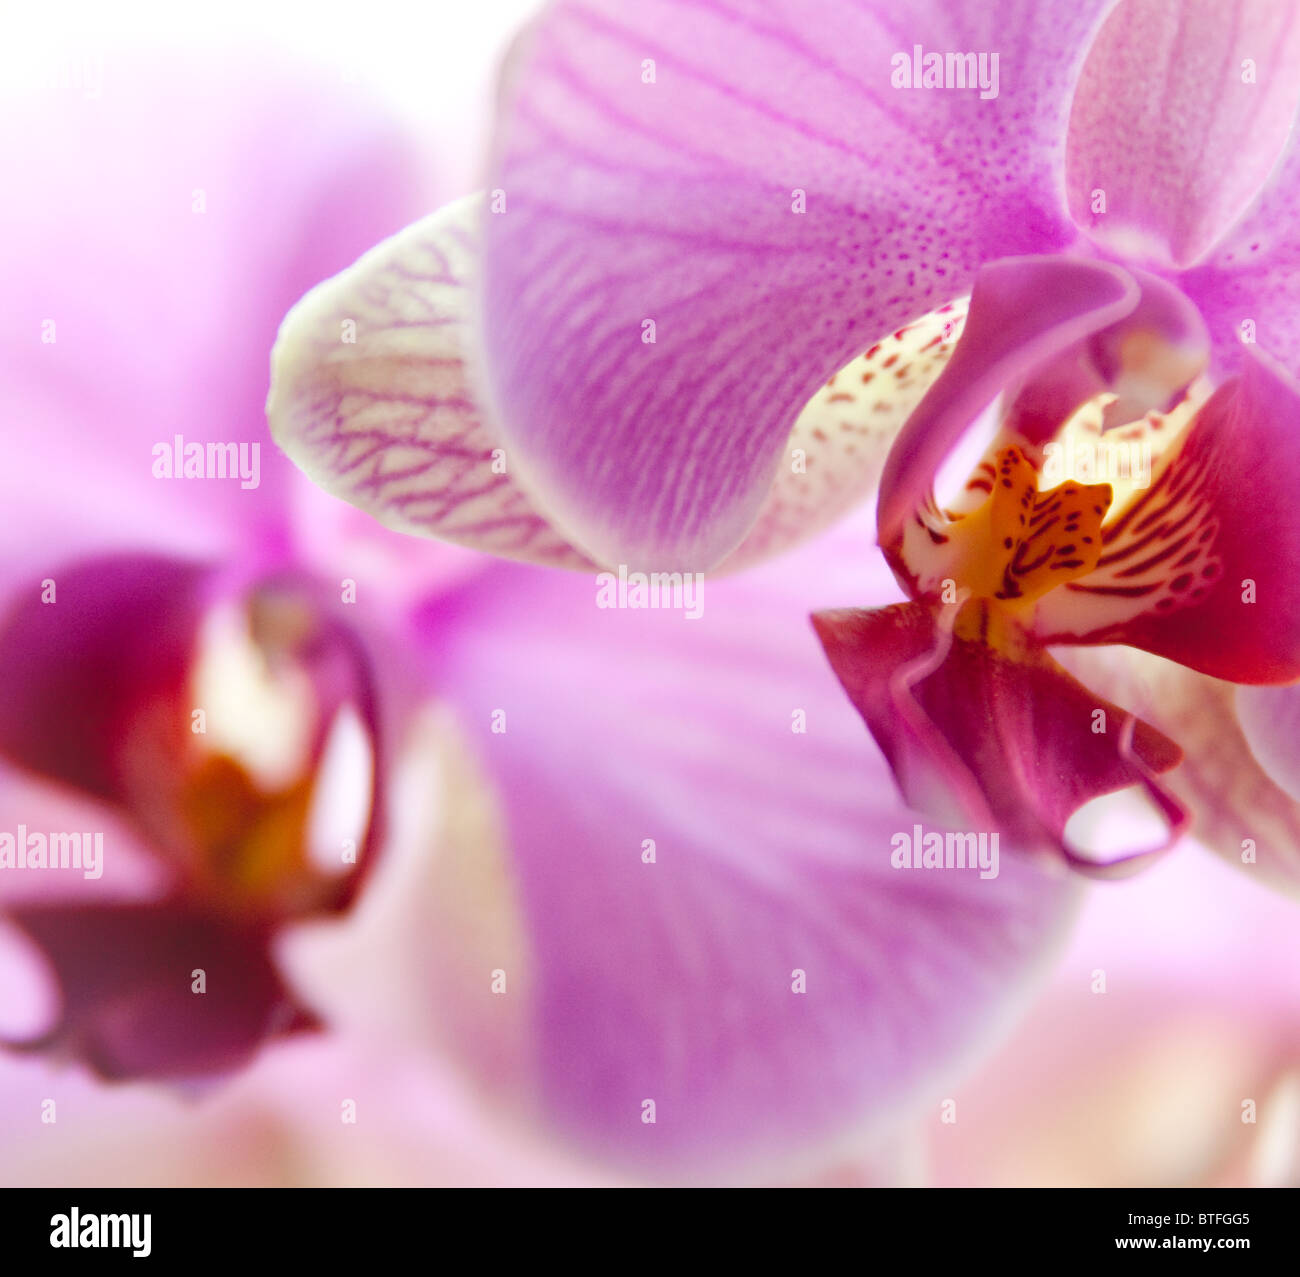 Couple of pink and white orchids on white blurred background. - Stock Image